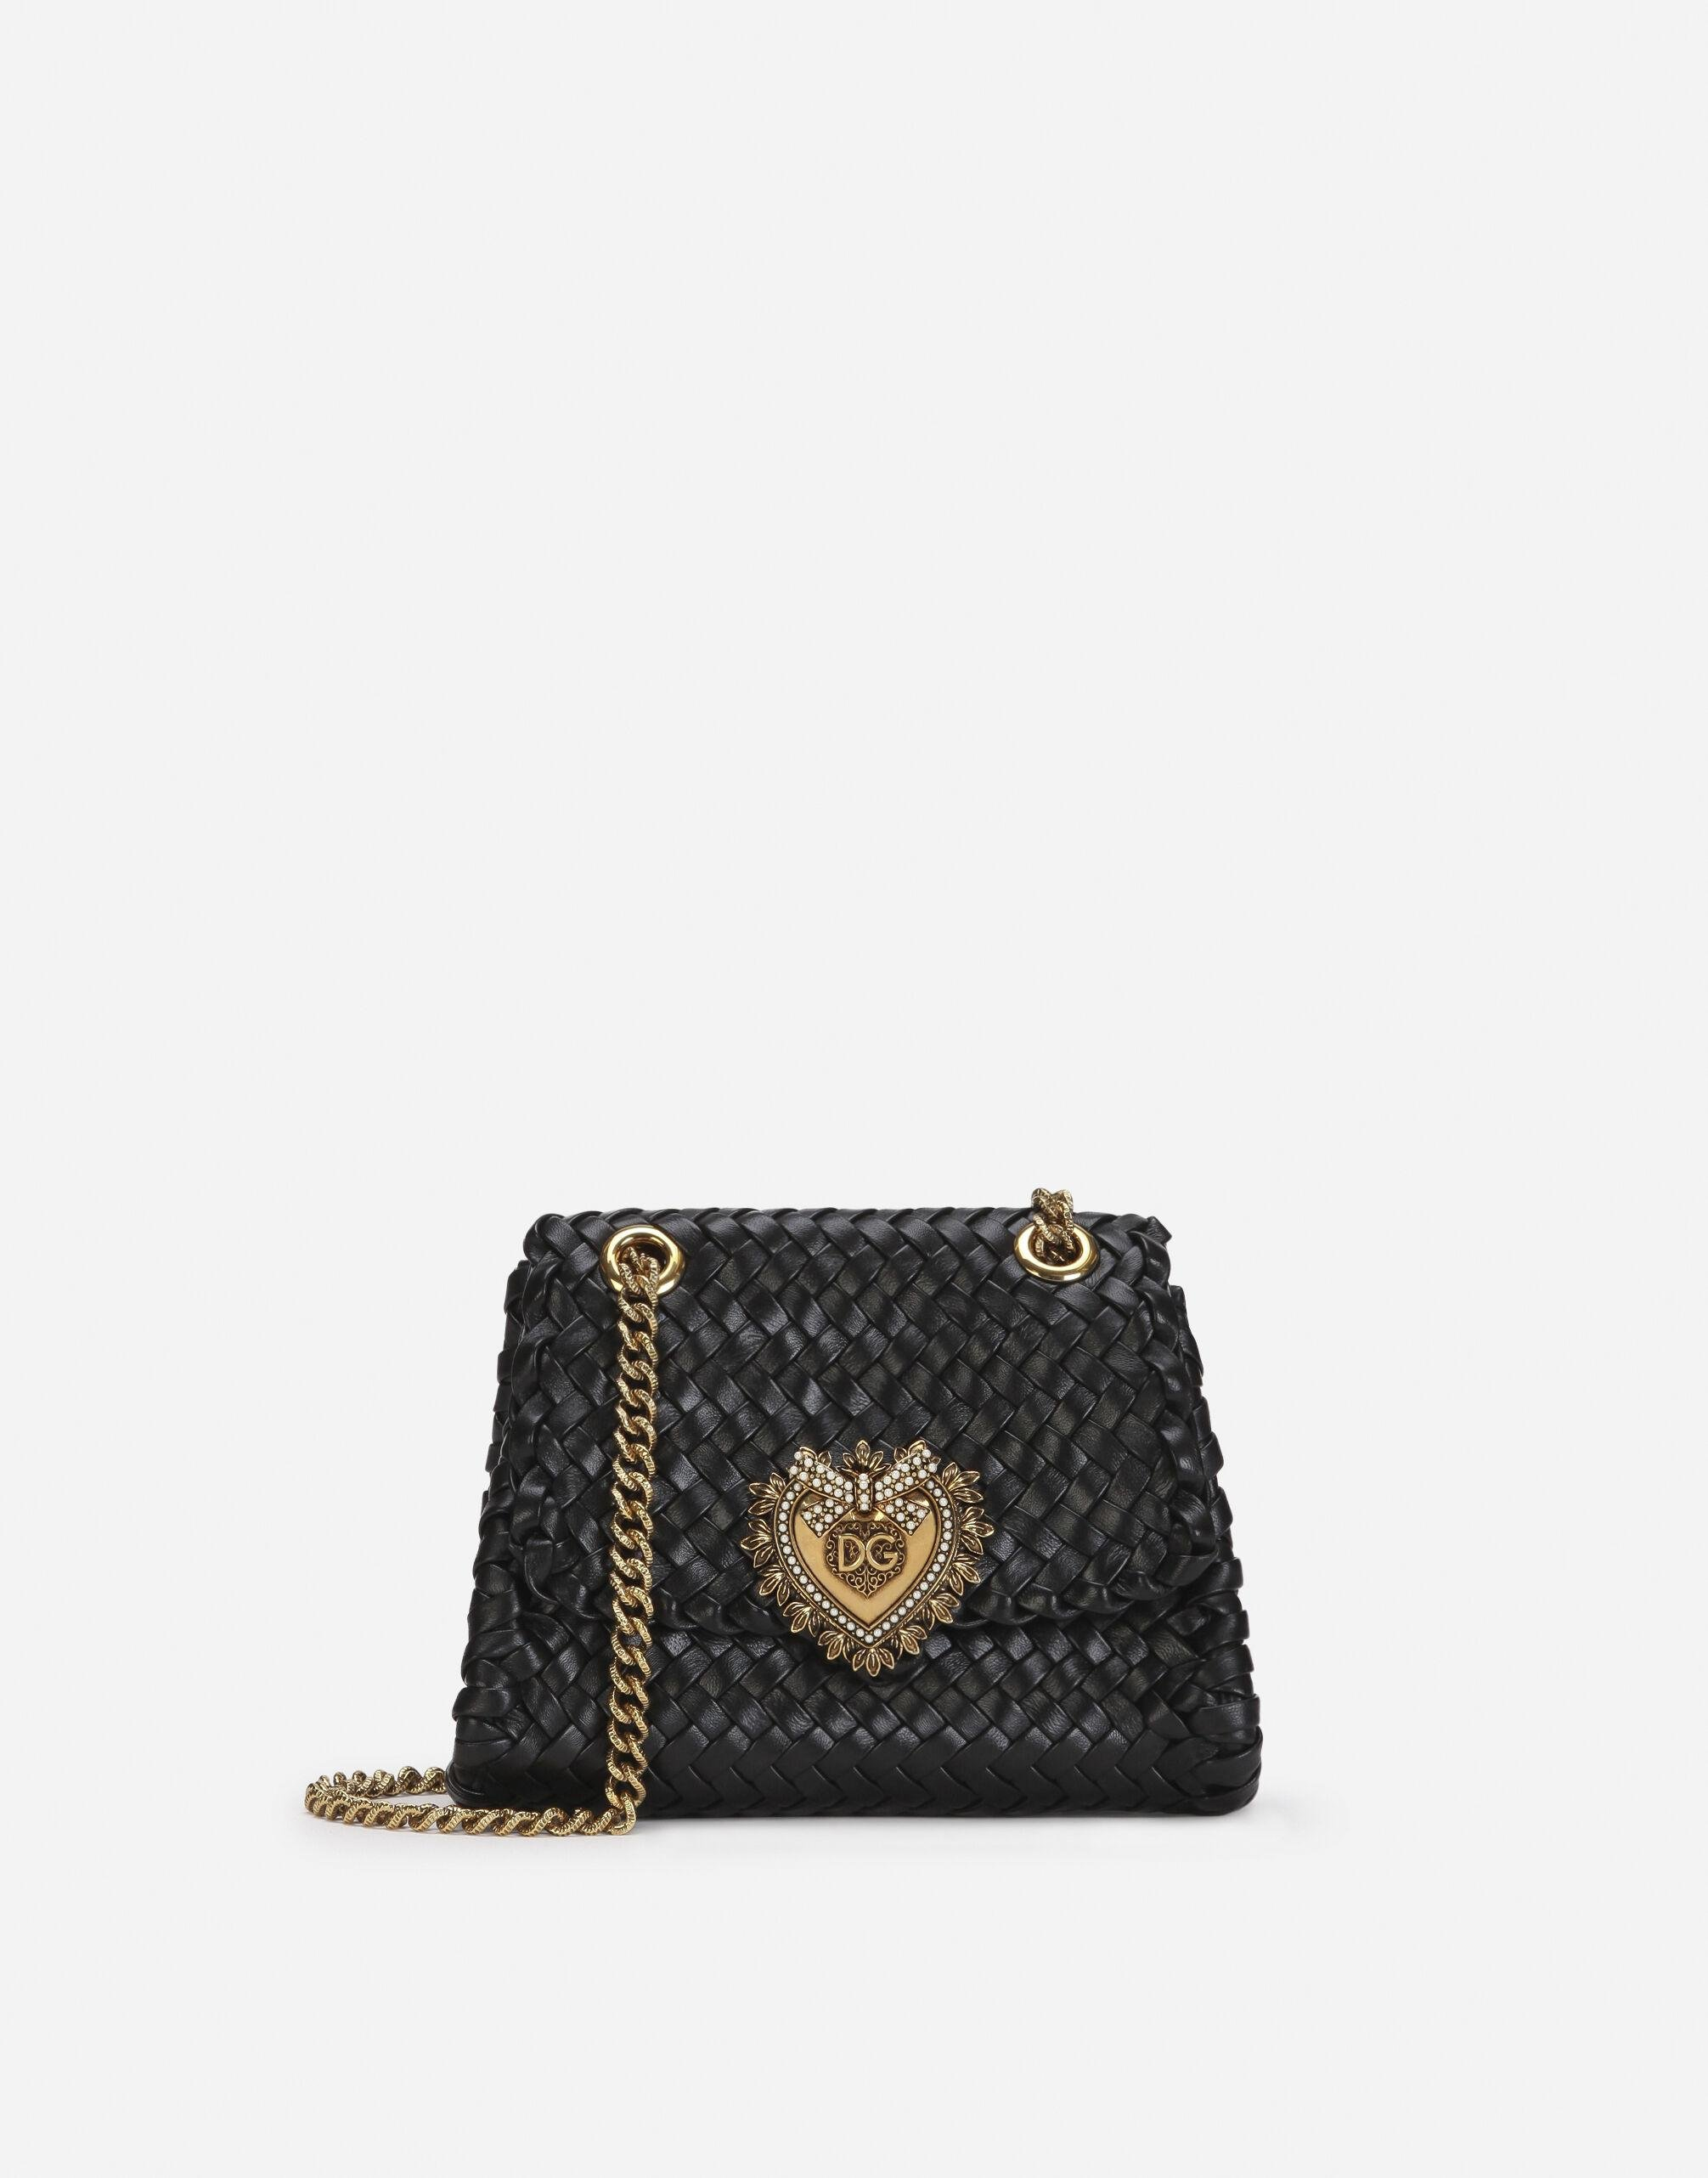 Small Devotion shoulder bag in woven nappa leather